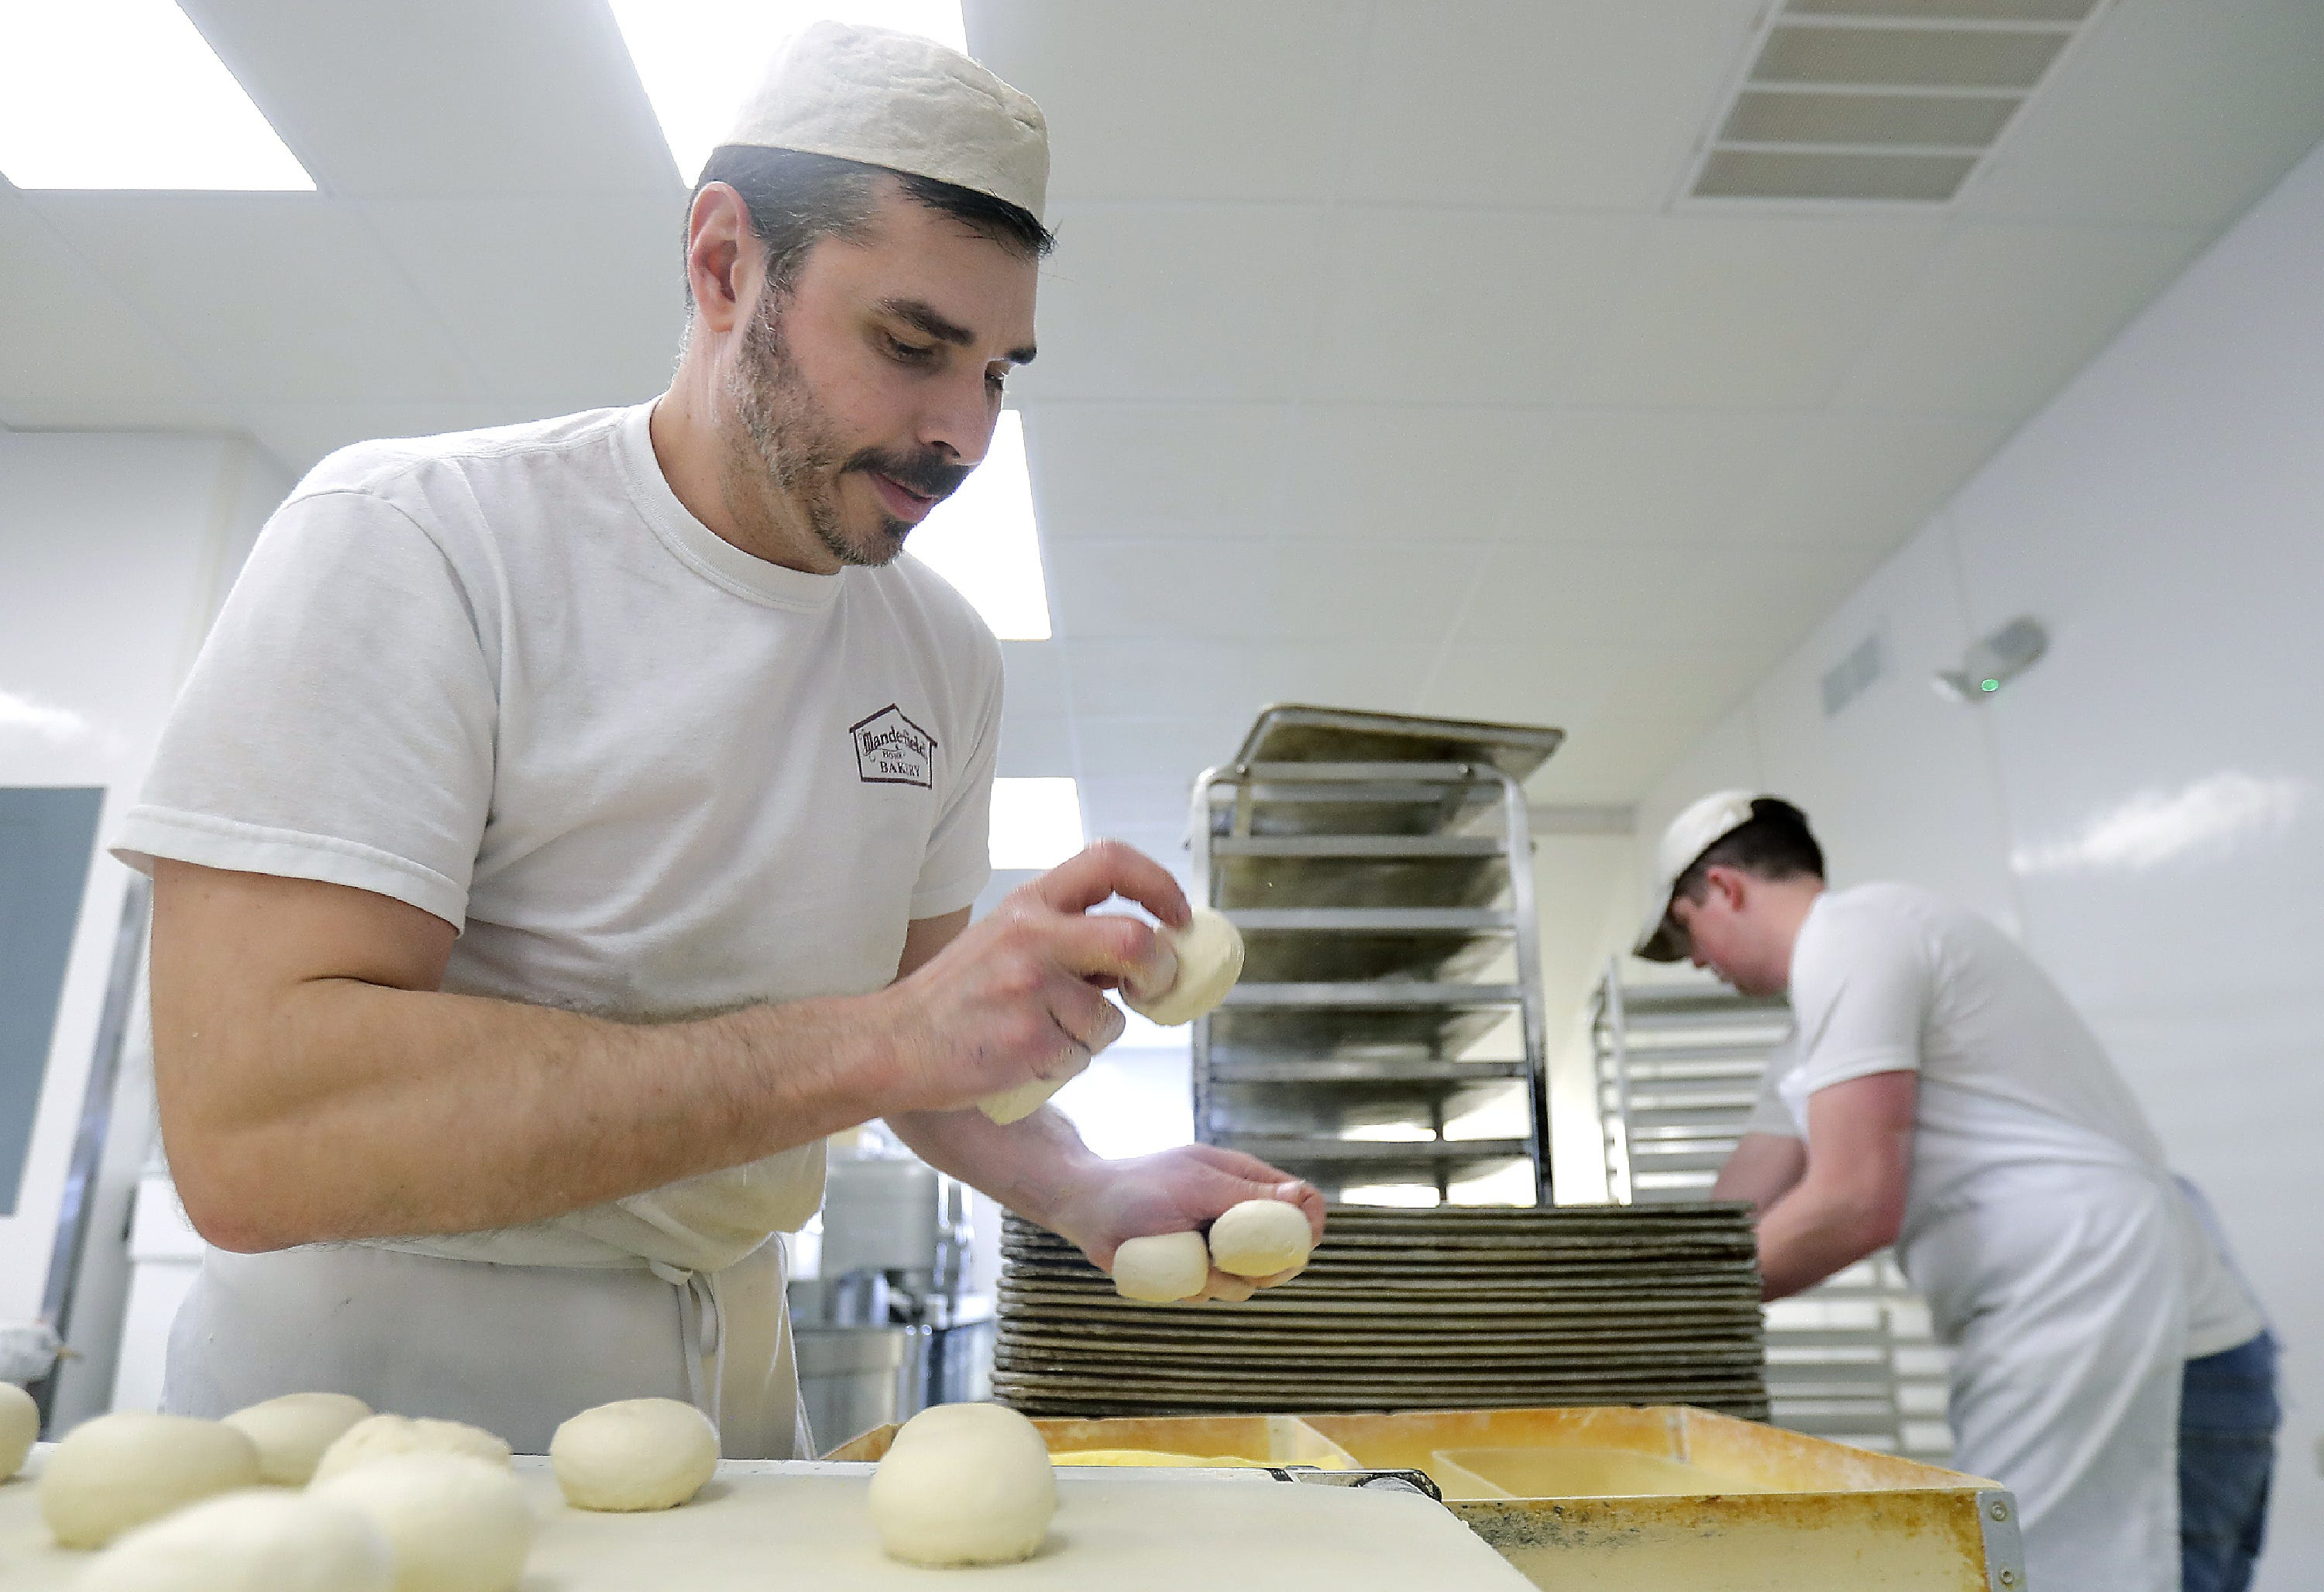 At Manderfield's Home Bakery on Appleton's east side, Bradley Jarvais, left, and JT Heenan roll dough for buns for wholesale accounts. The bakery will reopen this shop Wednesday, April 22, for retail customers.